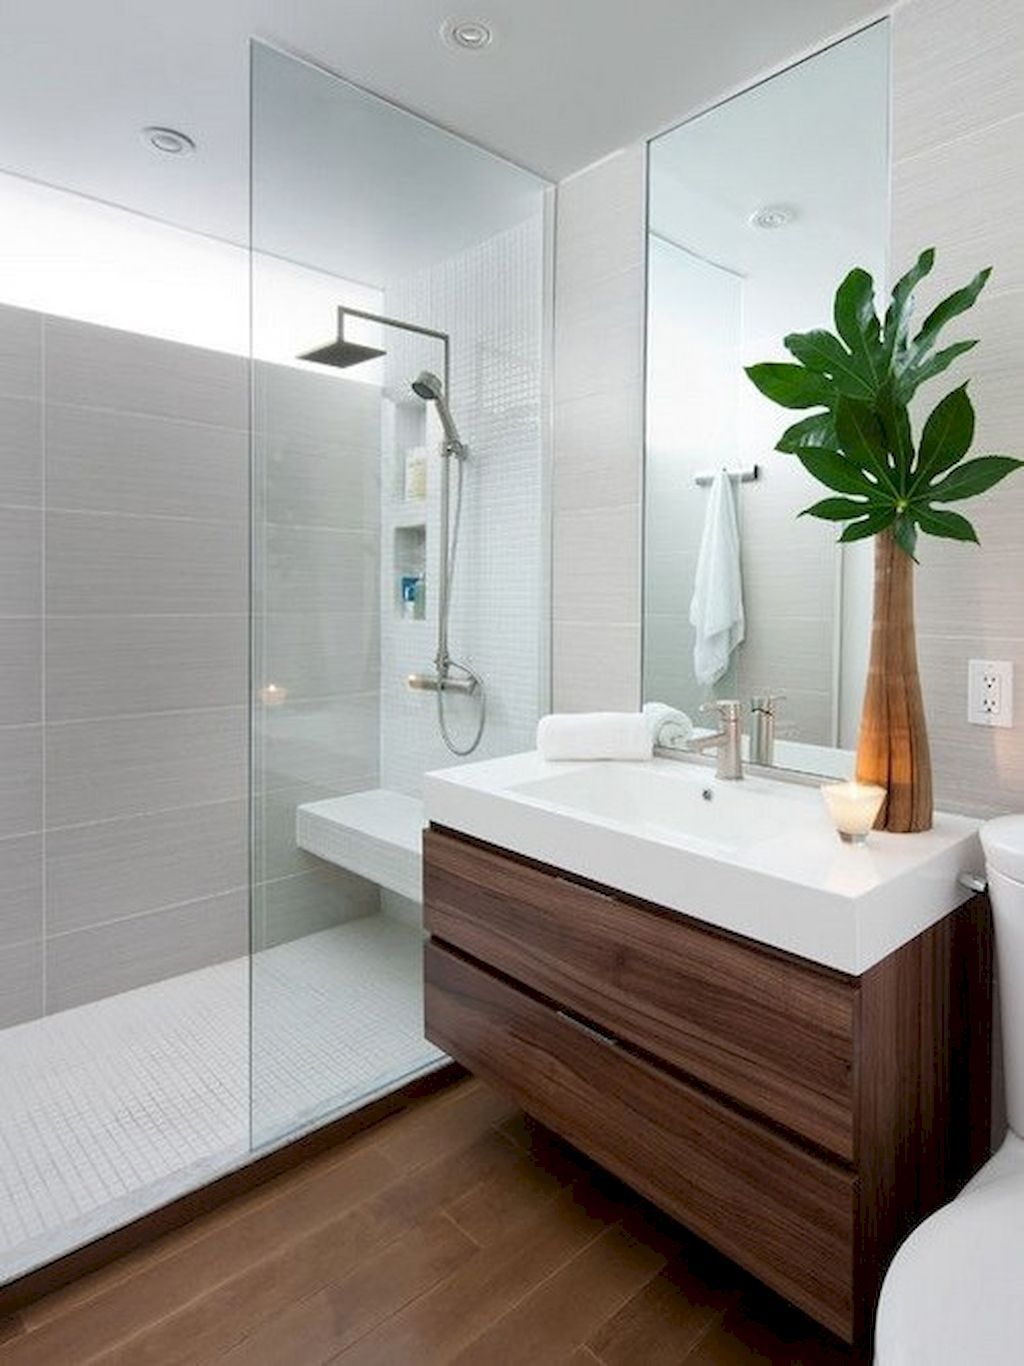 Minimalist bathroom remodel ideas on a budget (37) | house ...